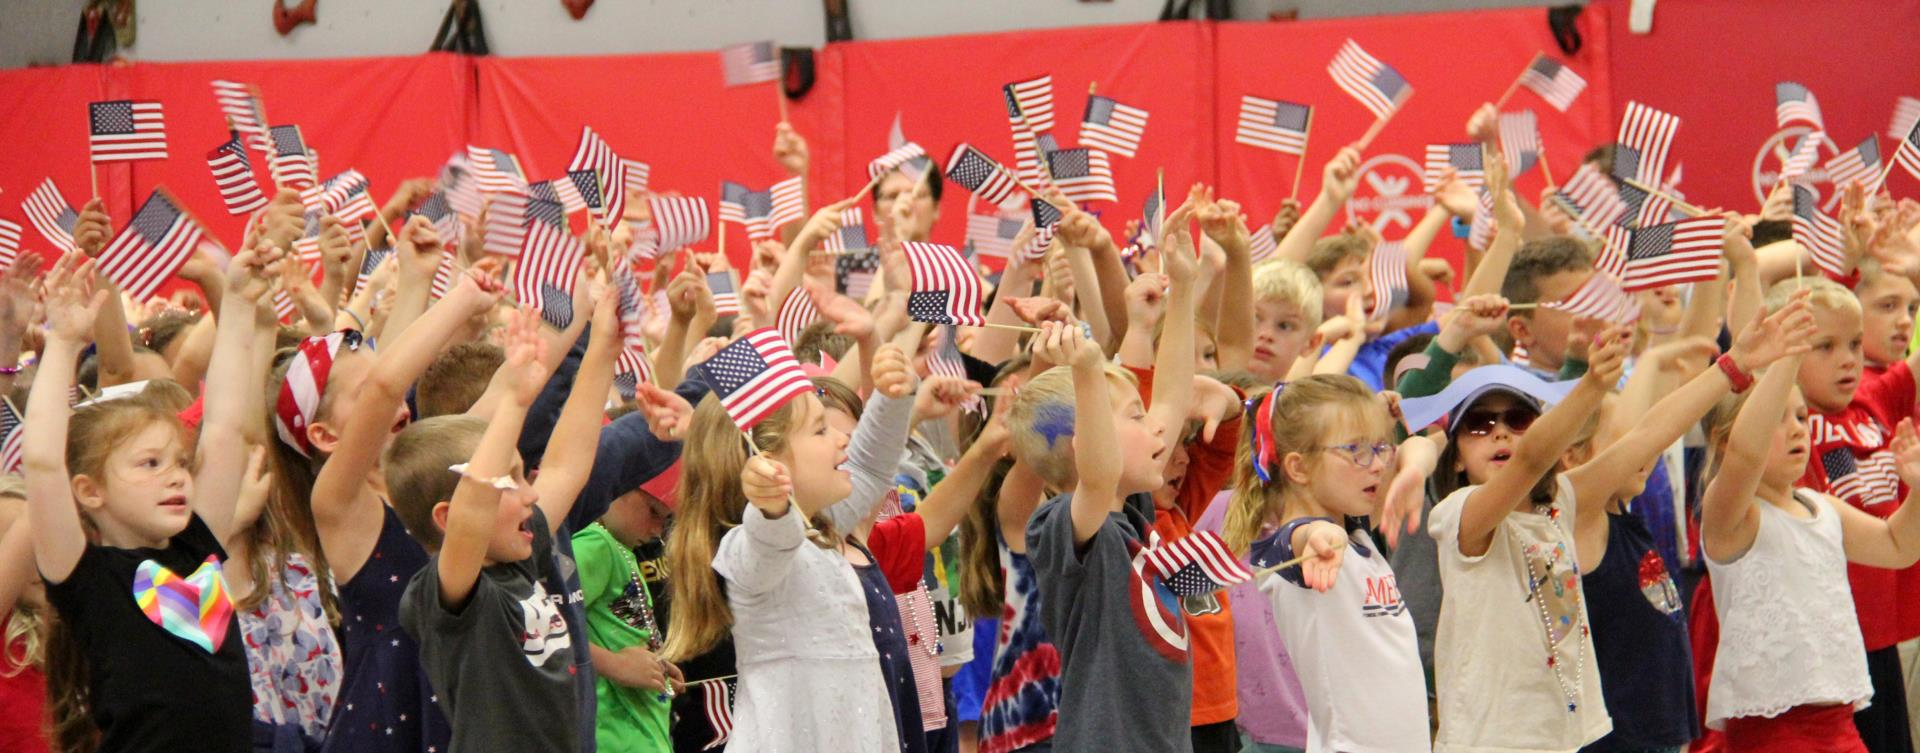 students waving flags in flag day ceremony